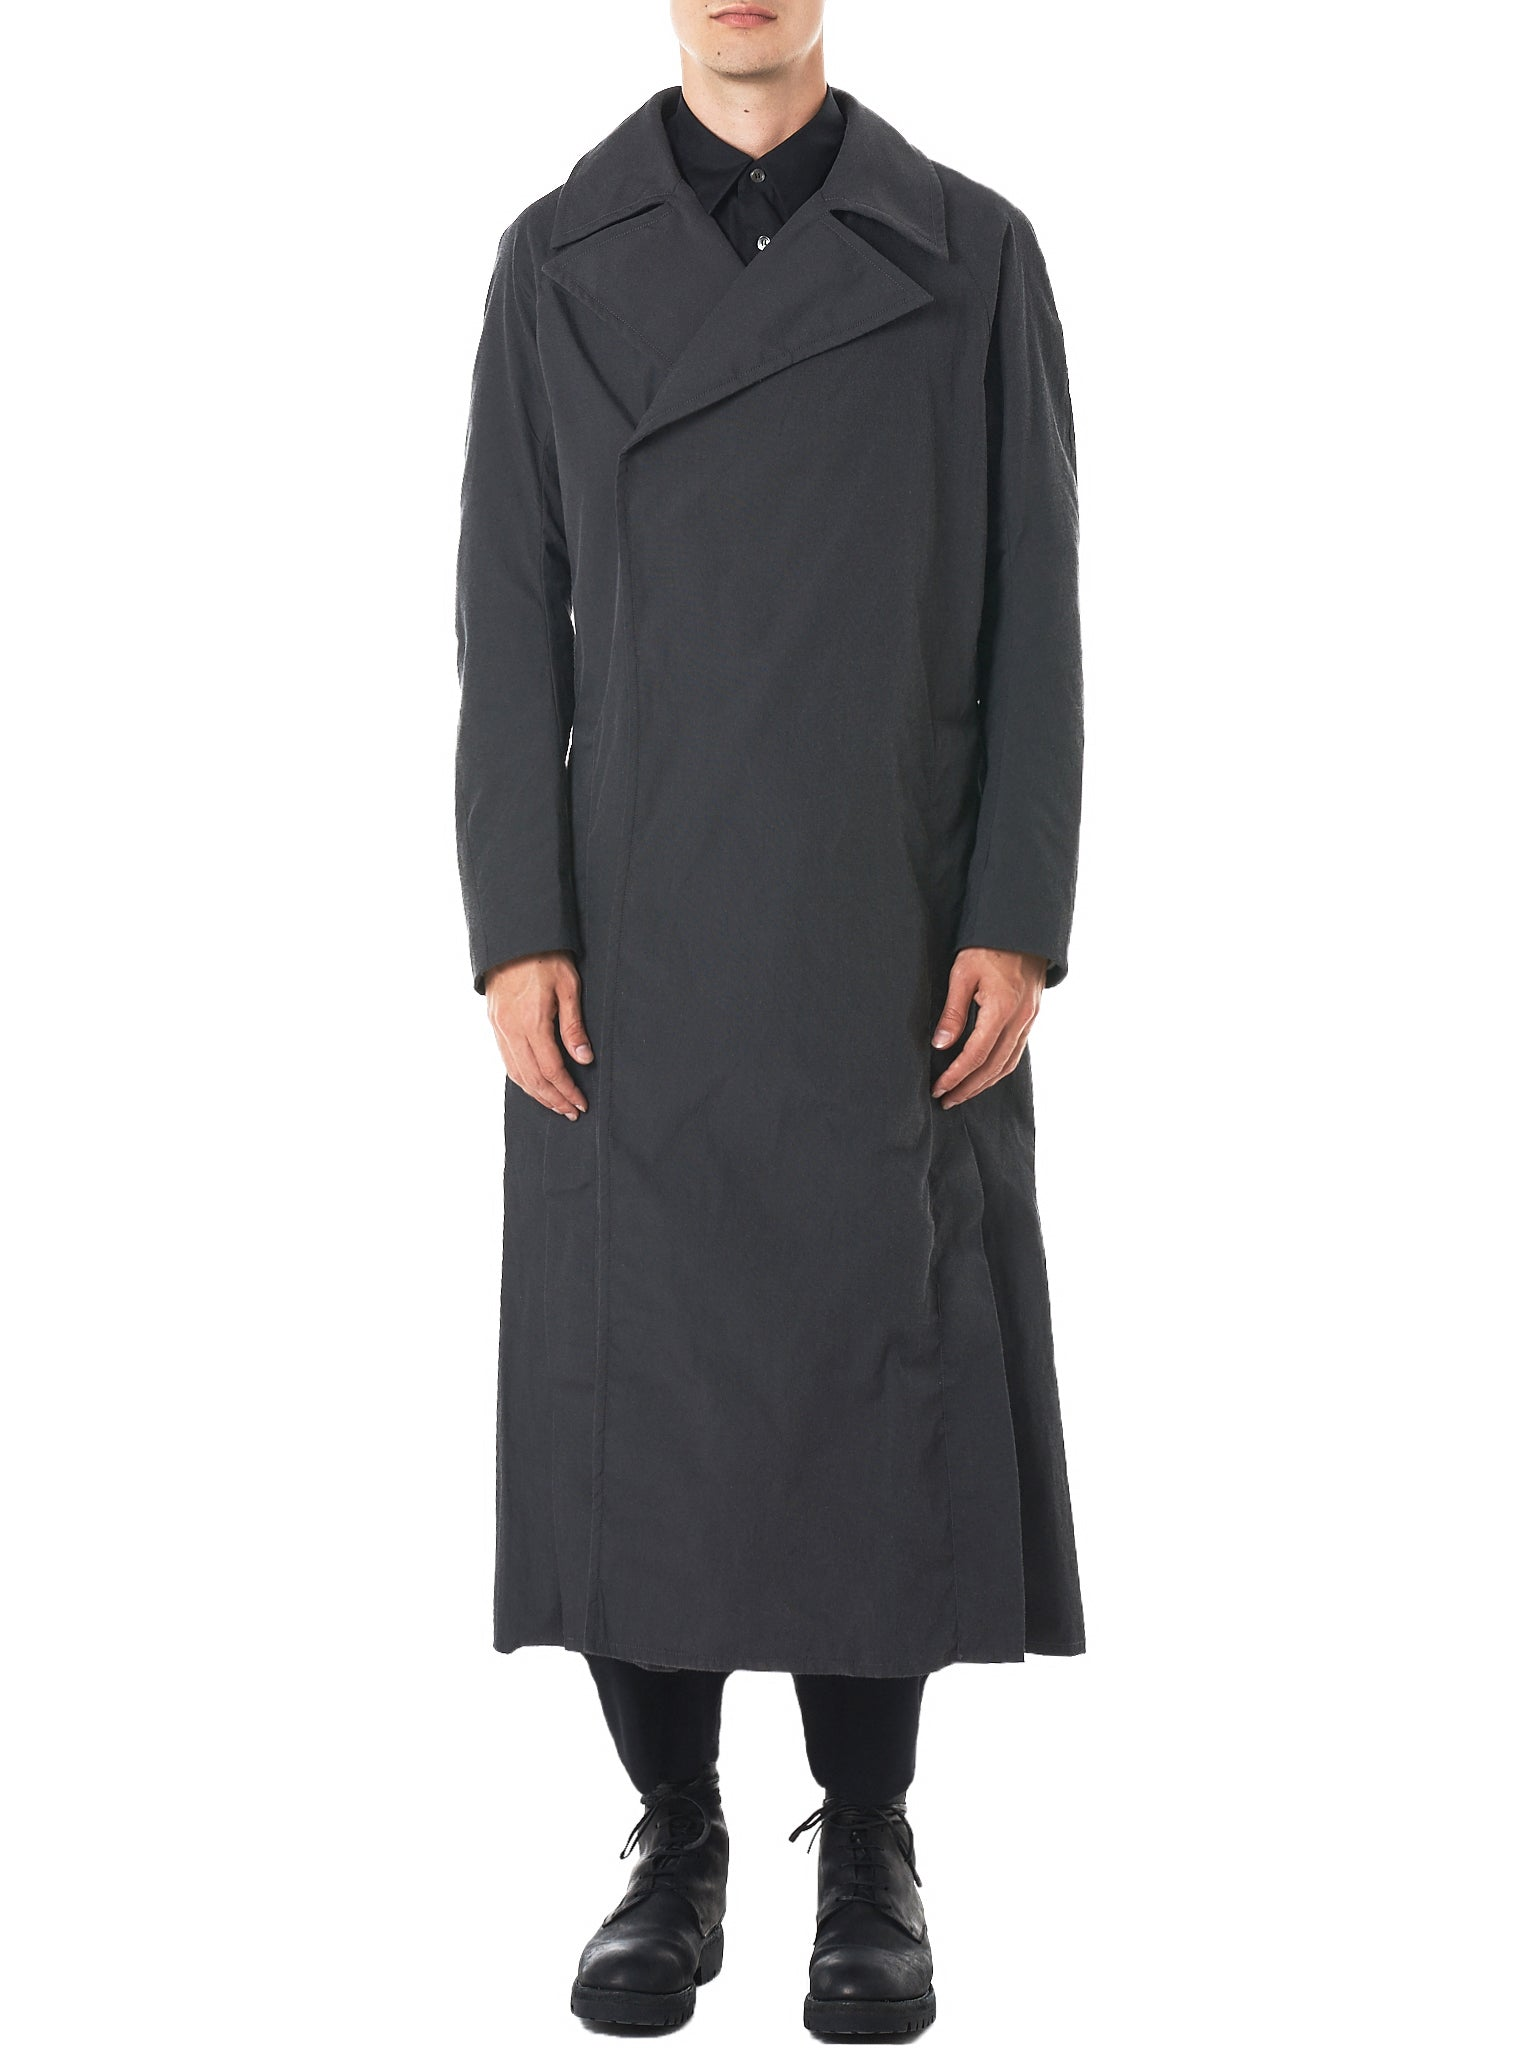 High Vent Trench Coat (1702SK02-DUST)